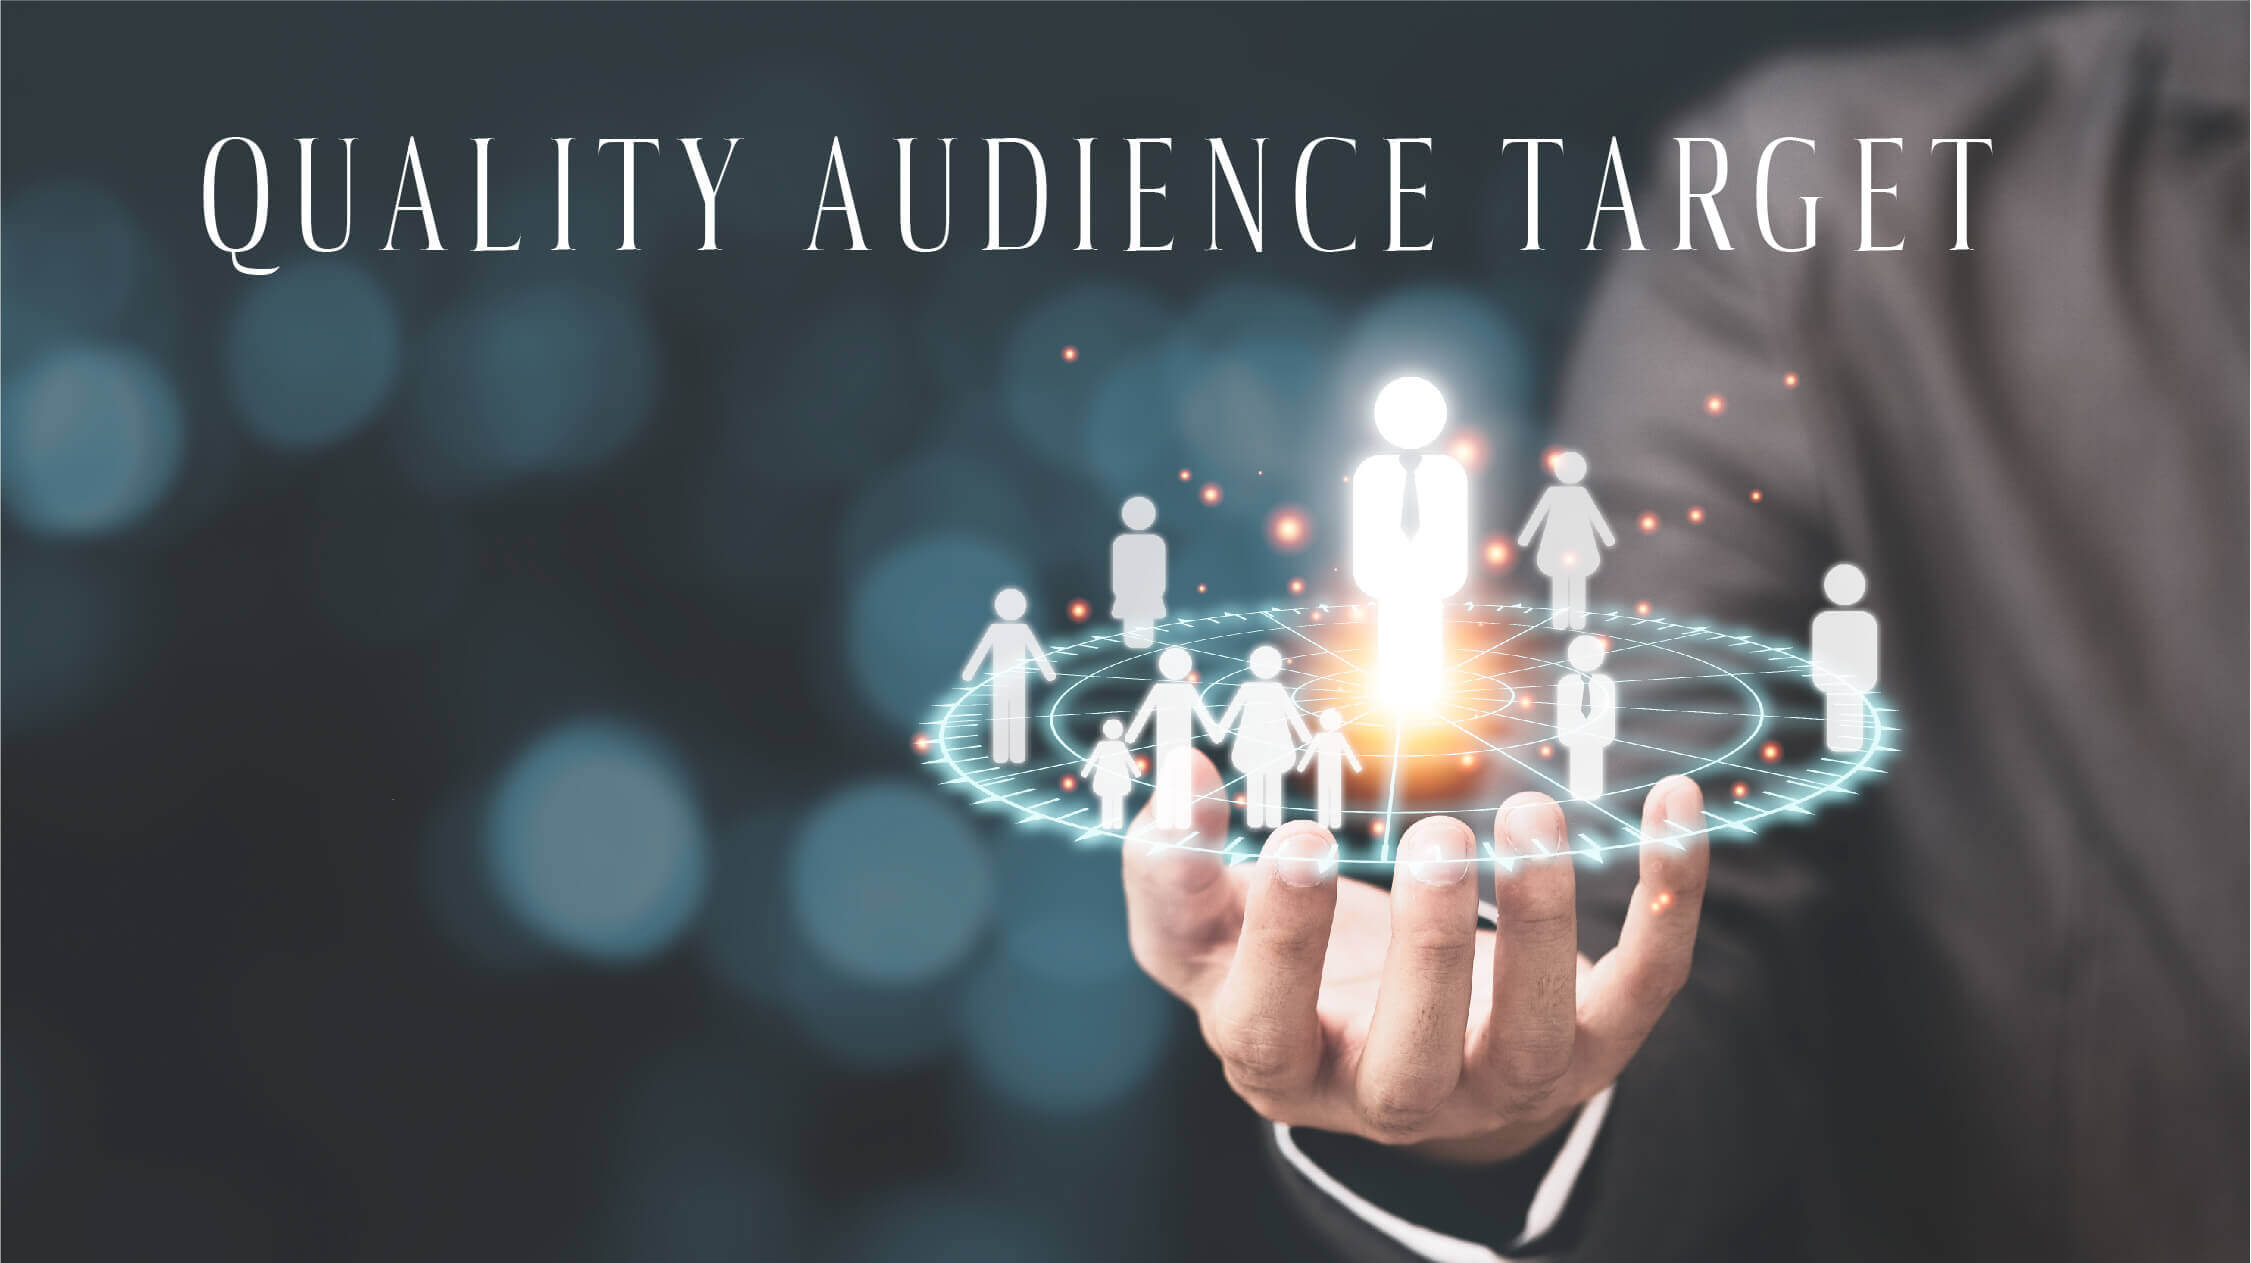 Quality-audience-target